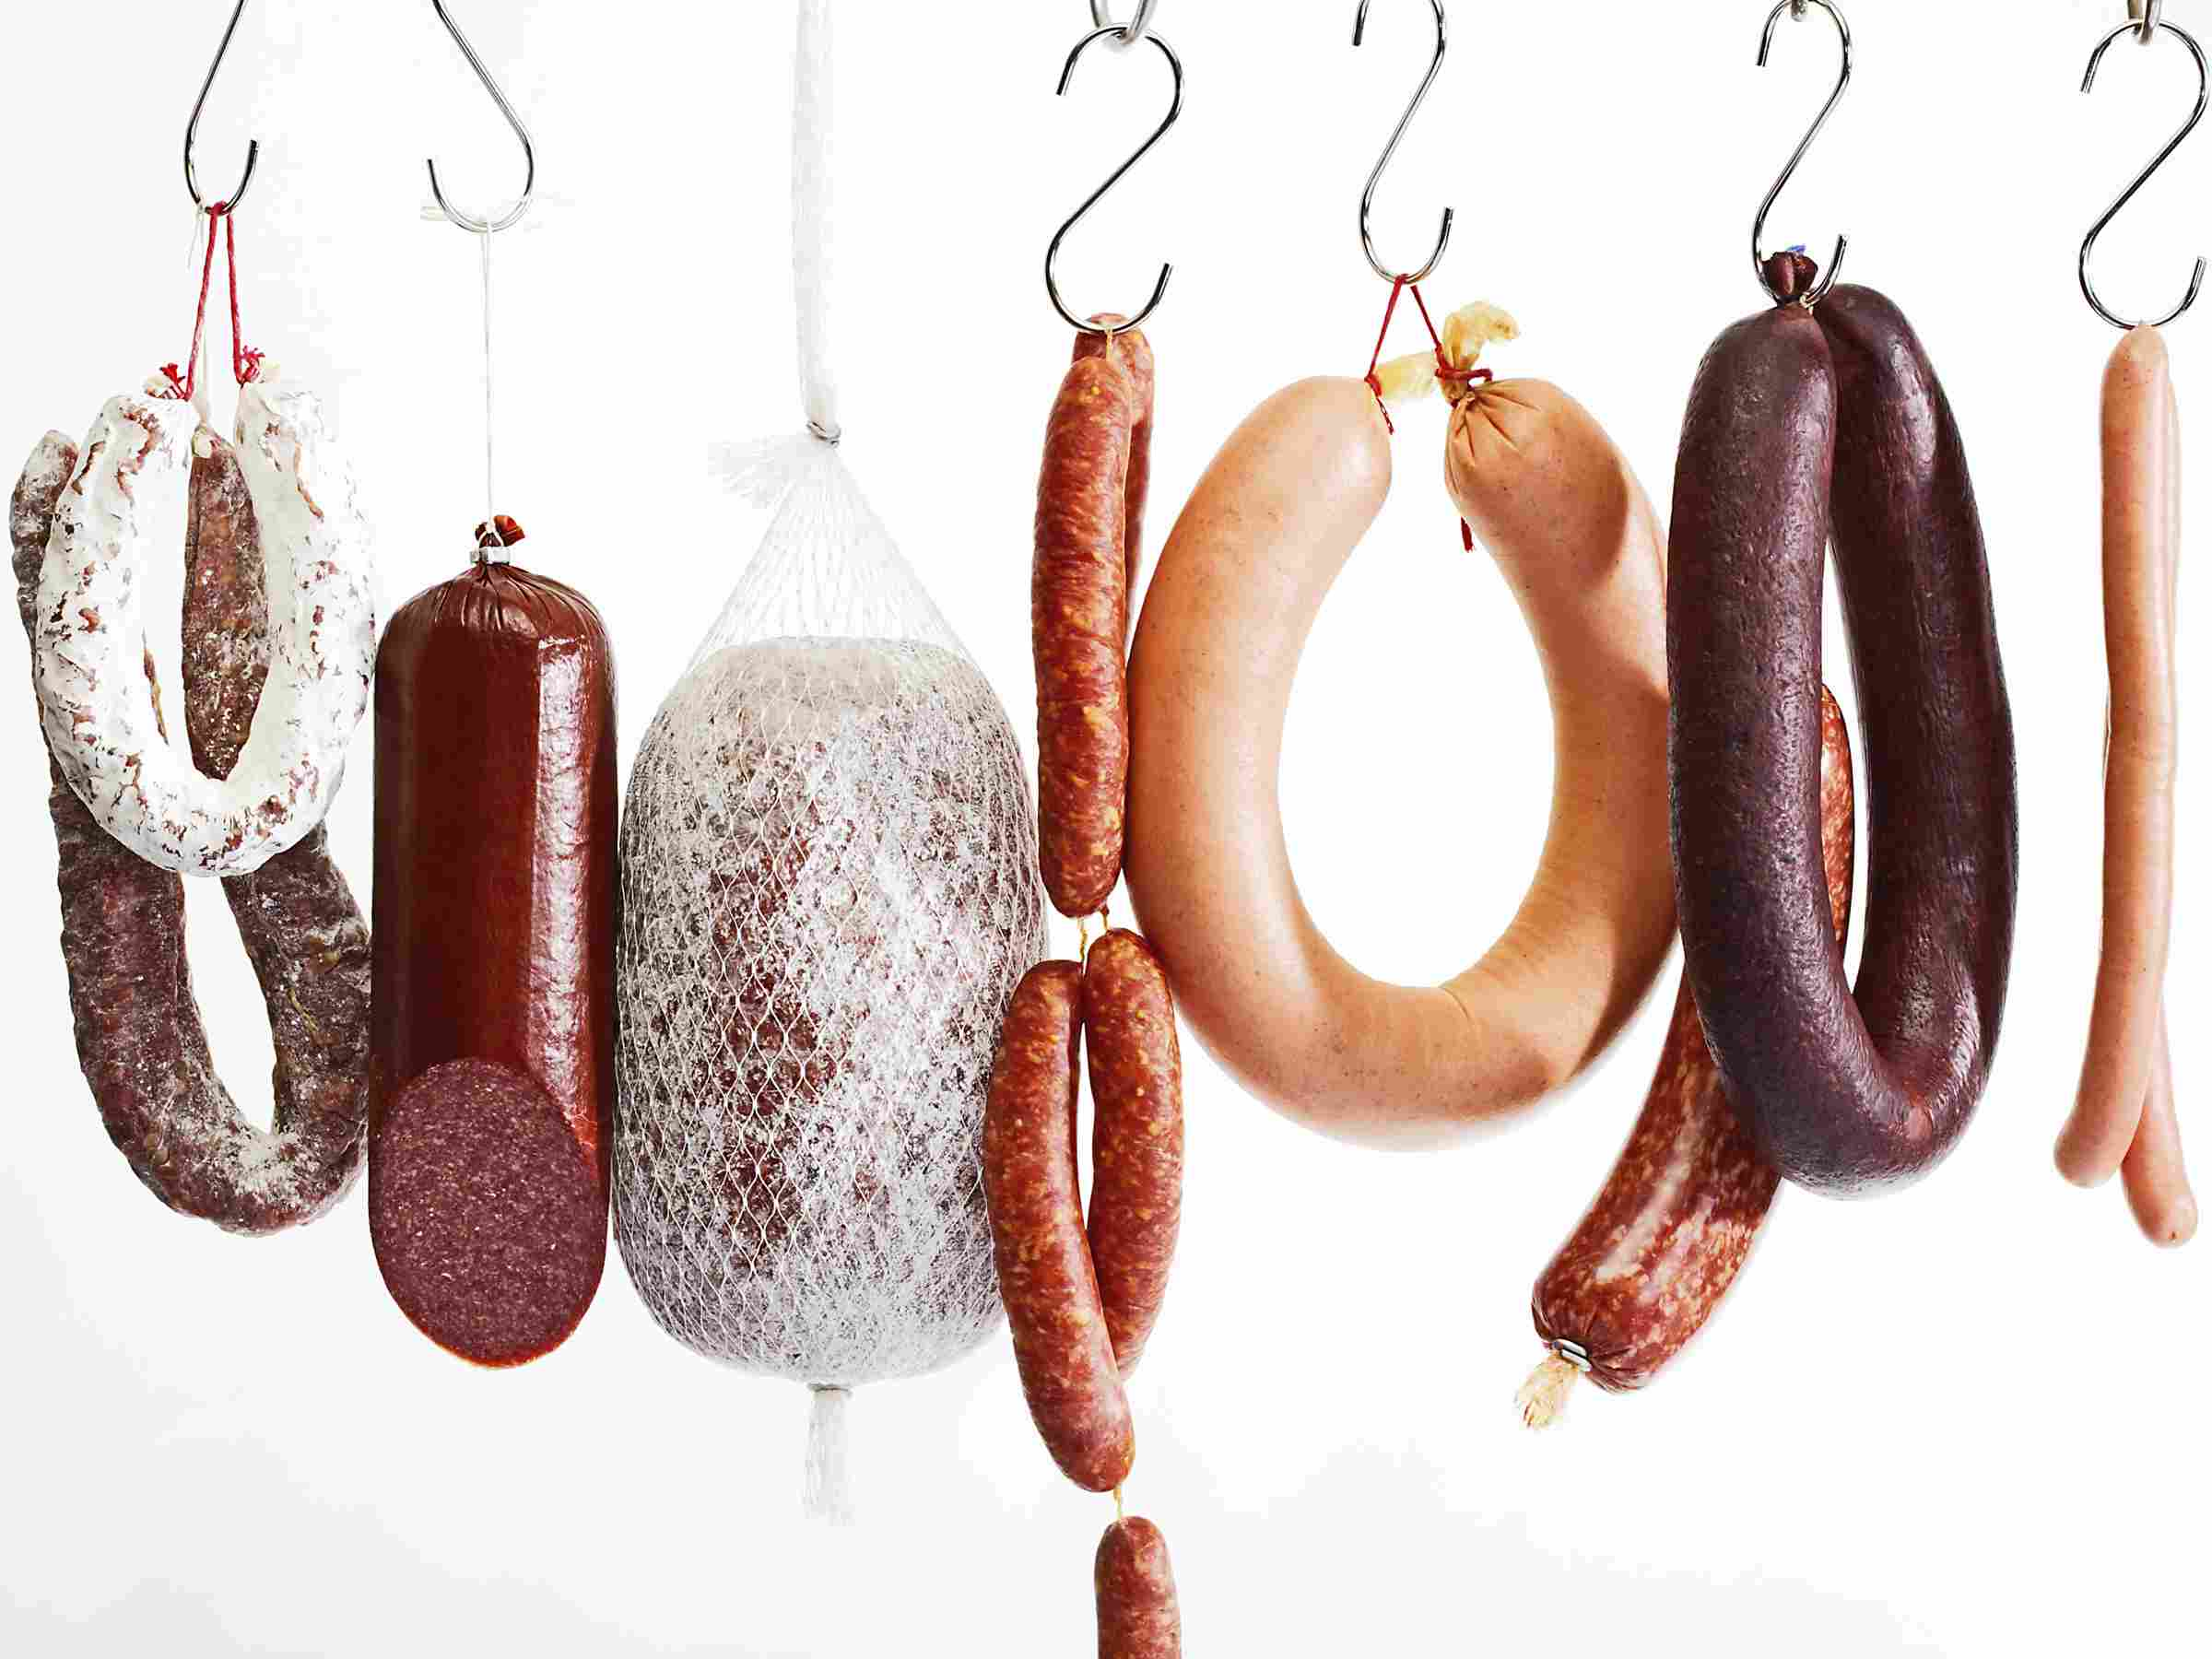 A variety of sausages on hooks